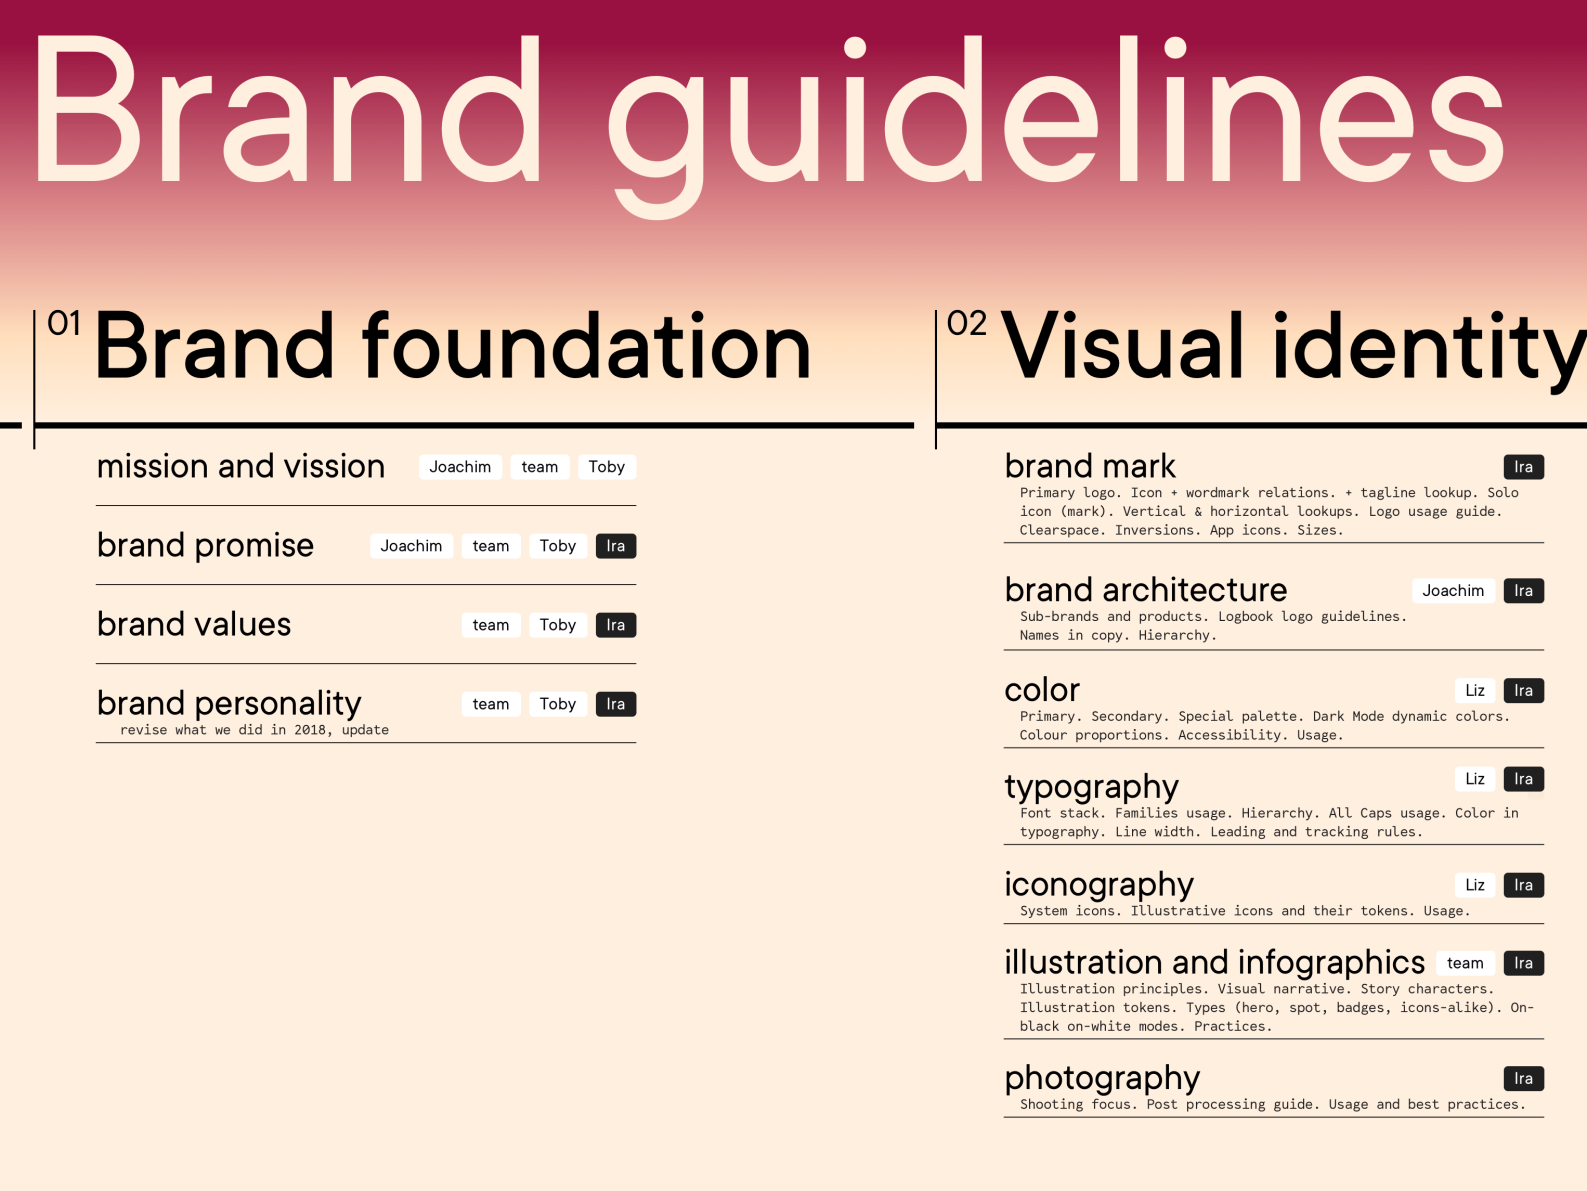 Brand guidelines planning